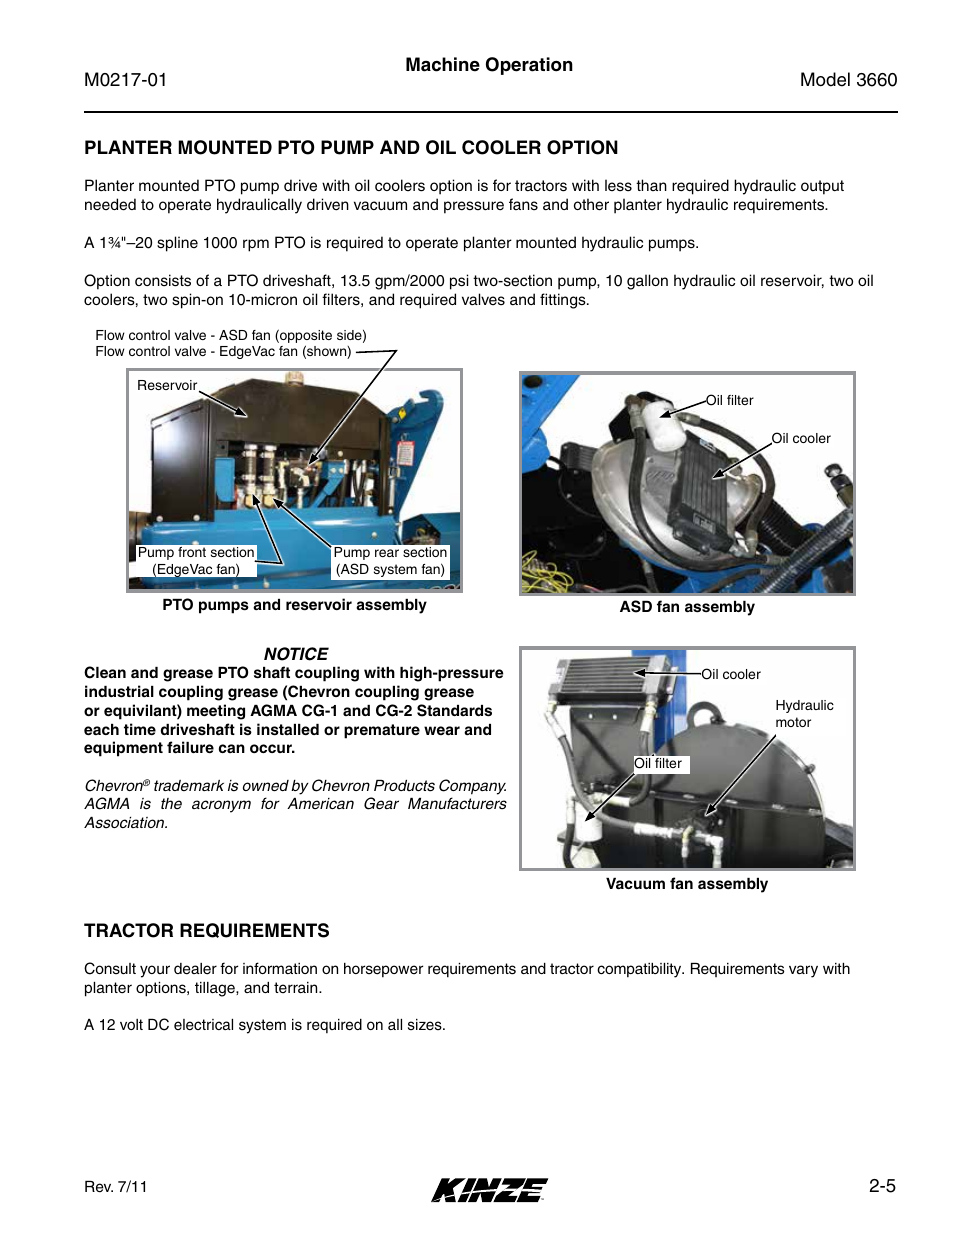 Planter Mounted Pto Pump And Oil Cooler Option Tractor Requirements